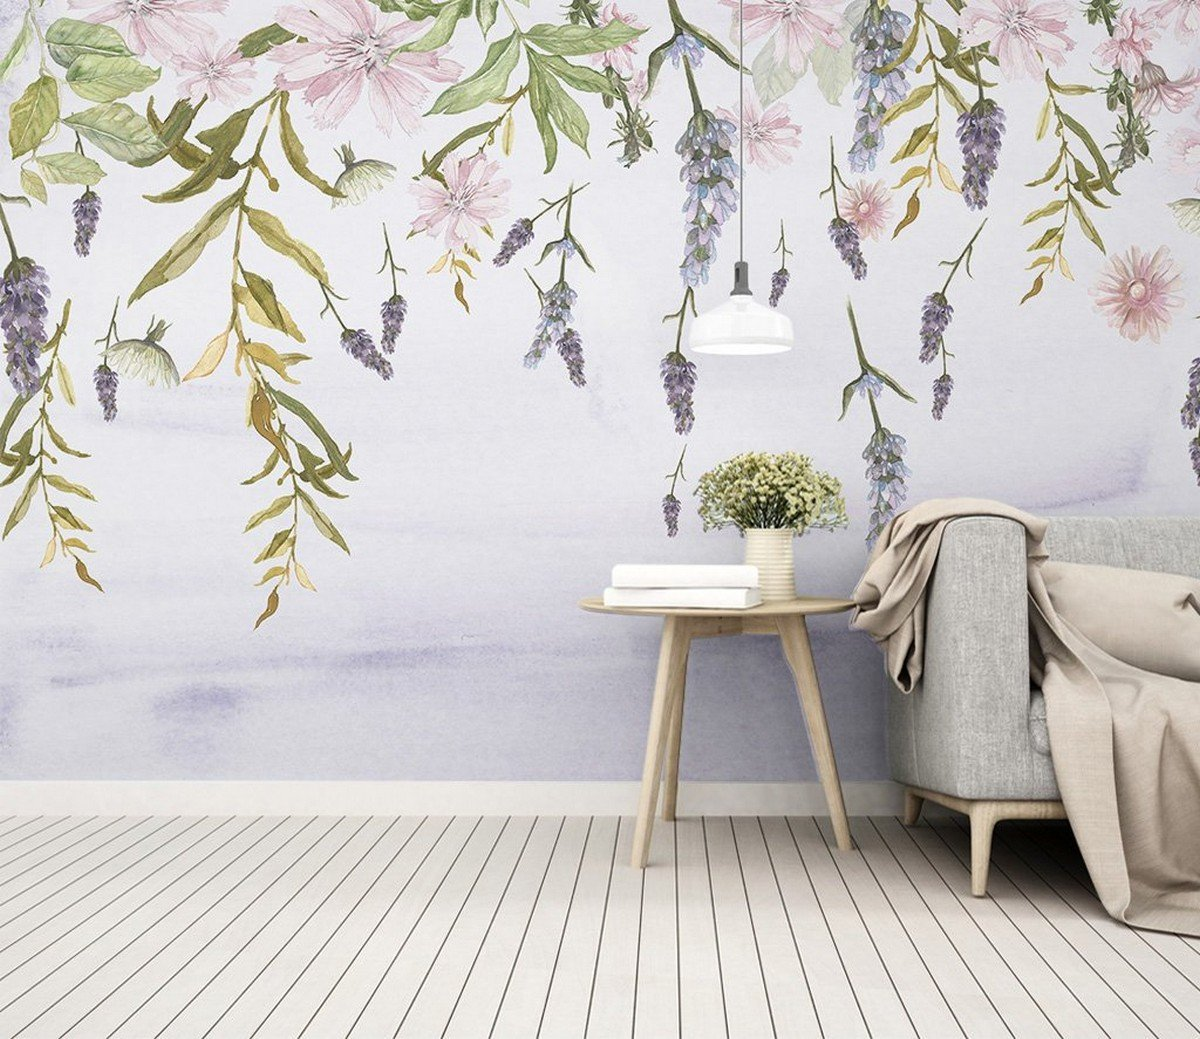 Petals, sunshine, and a bit of natural lighting sounds like a great way to rework the home, don't you think? And with these floral wallpapers we'll have your inspiration for springtime decor ignited and your wheels turning for some weekend DIYs.